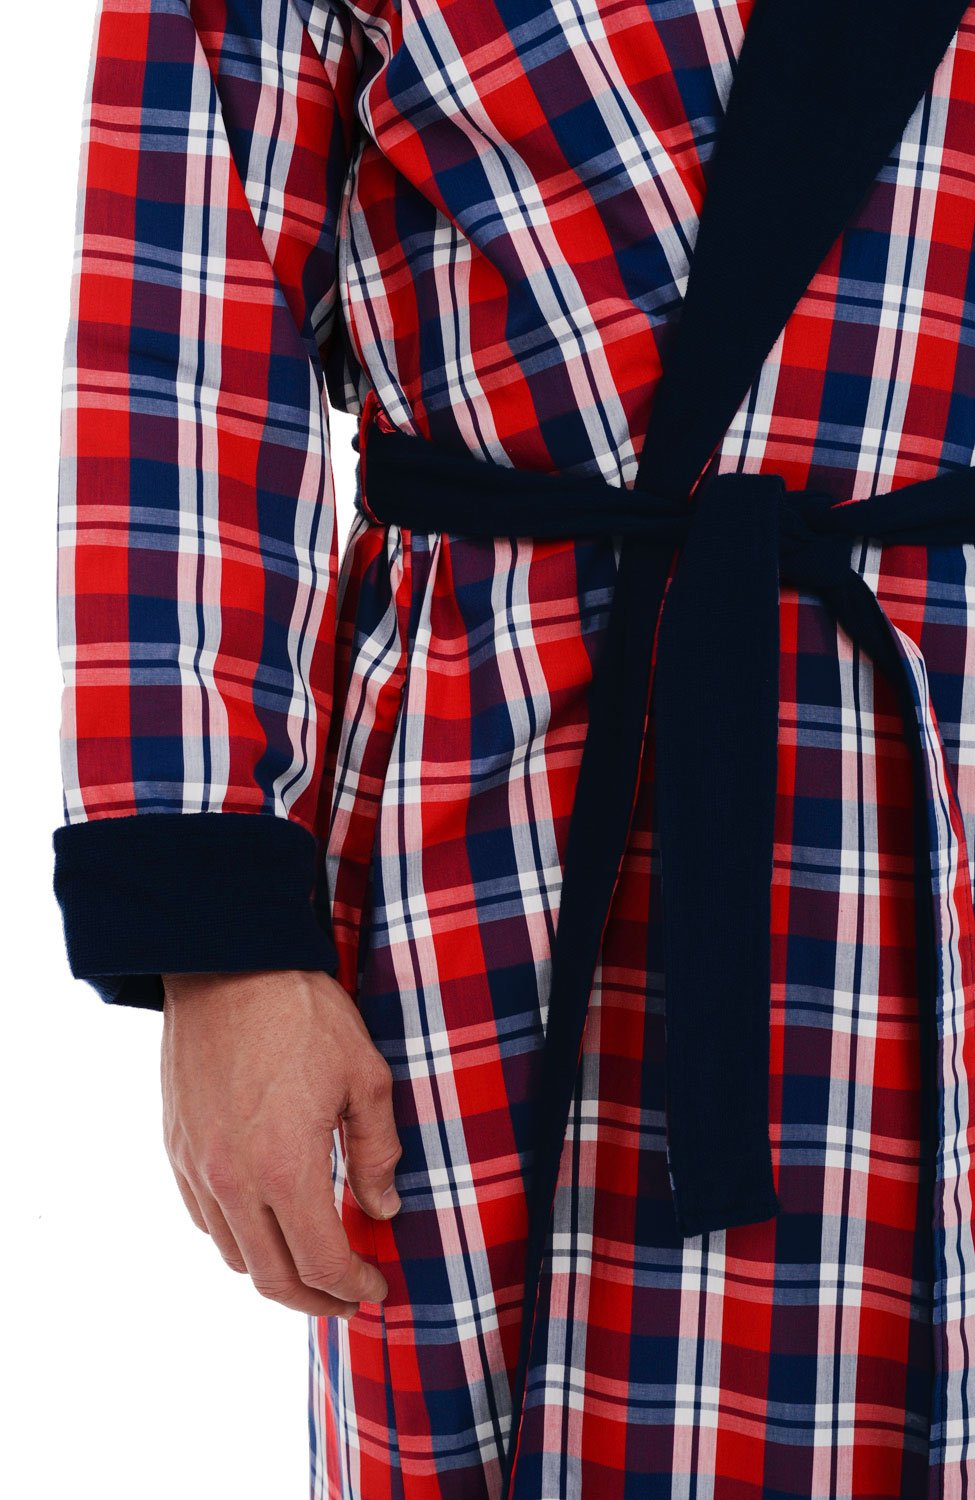 Alexander Del Rossa Del Rossa Mens Turkish Terry Cloth Robe, Woven Shell Long Bathrobe, Blue and Red Plaid Large XL (A0140P40XL) by Alexander Del Rossa (Image #3)